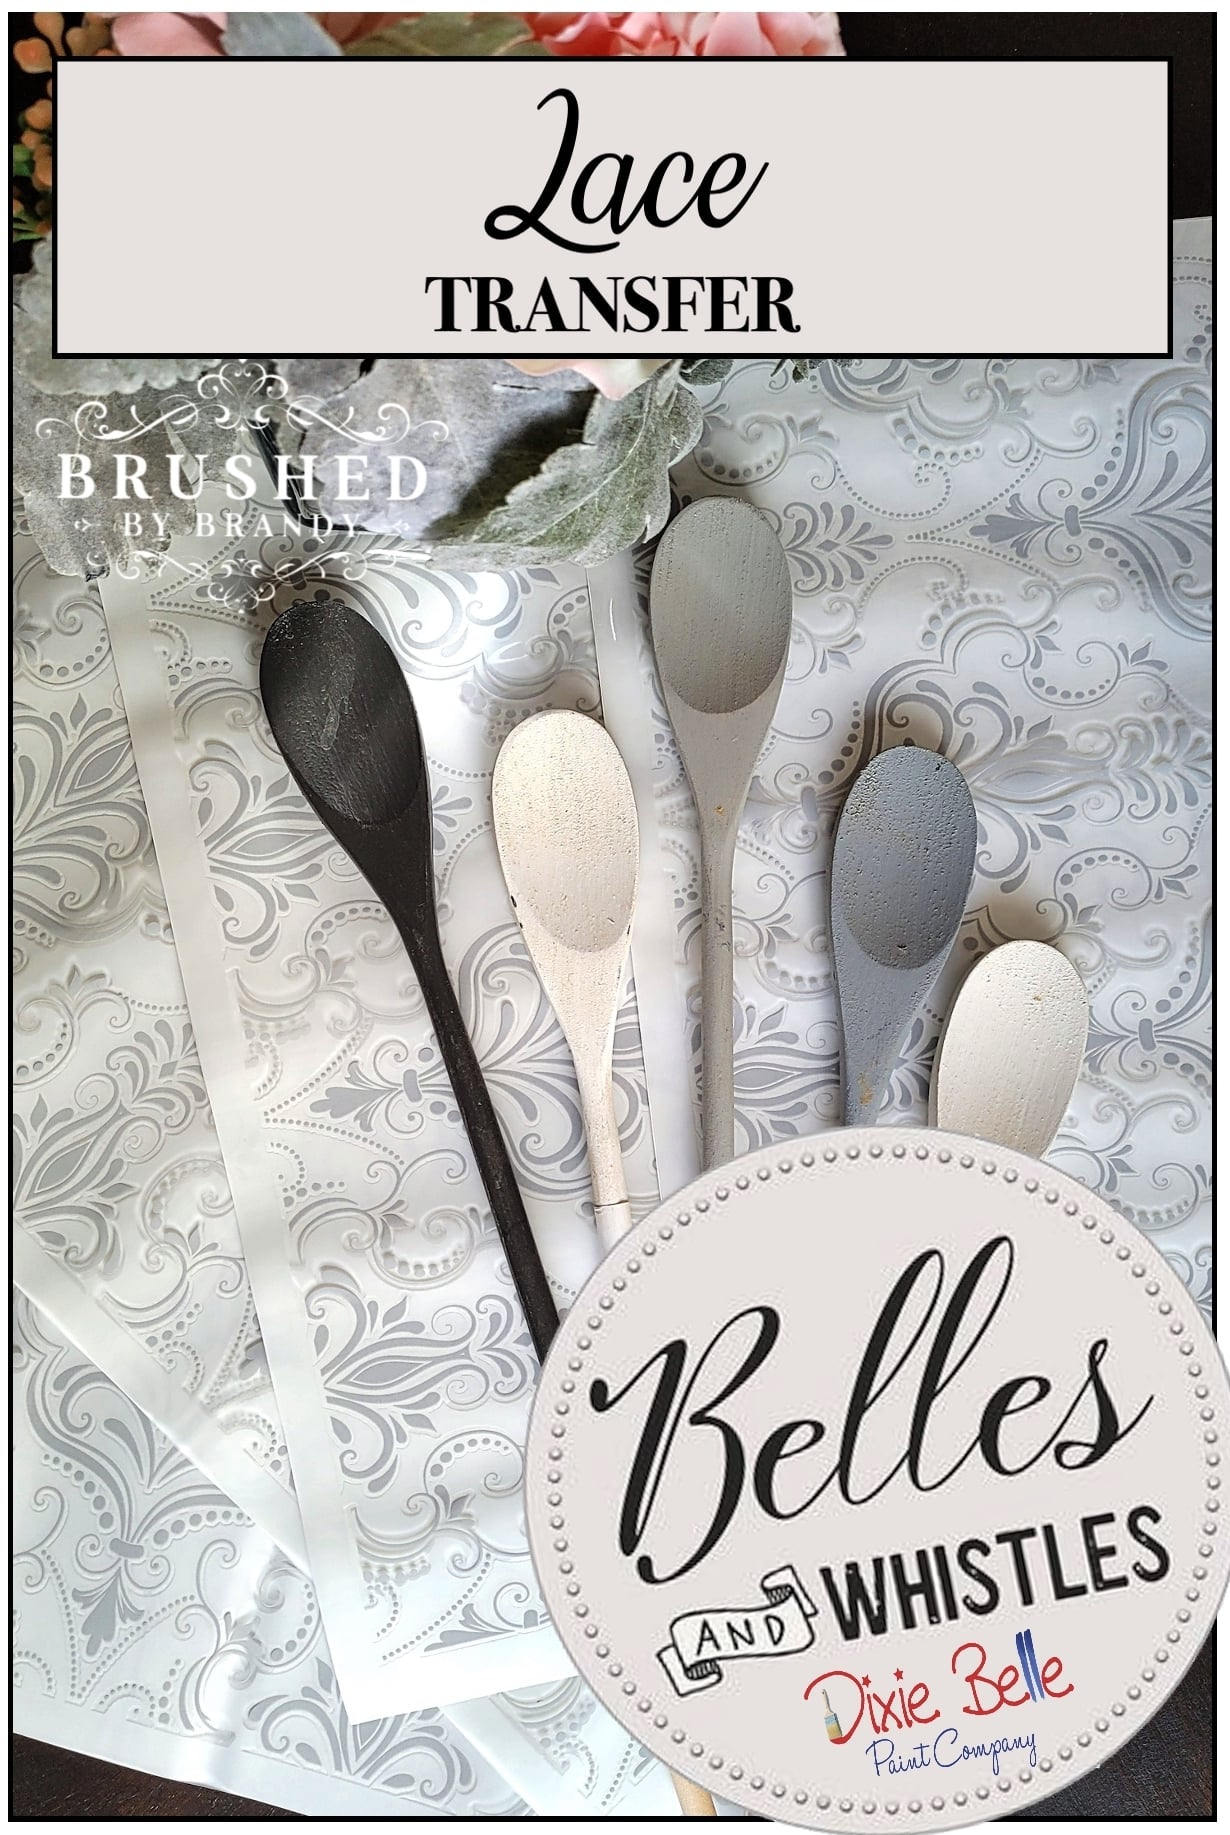 Lace - Decor Transfer - Belles & Whistles® by Dixie Belle